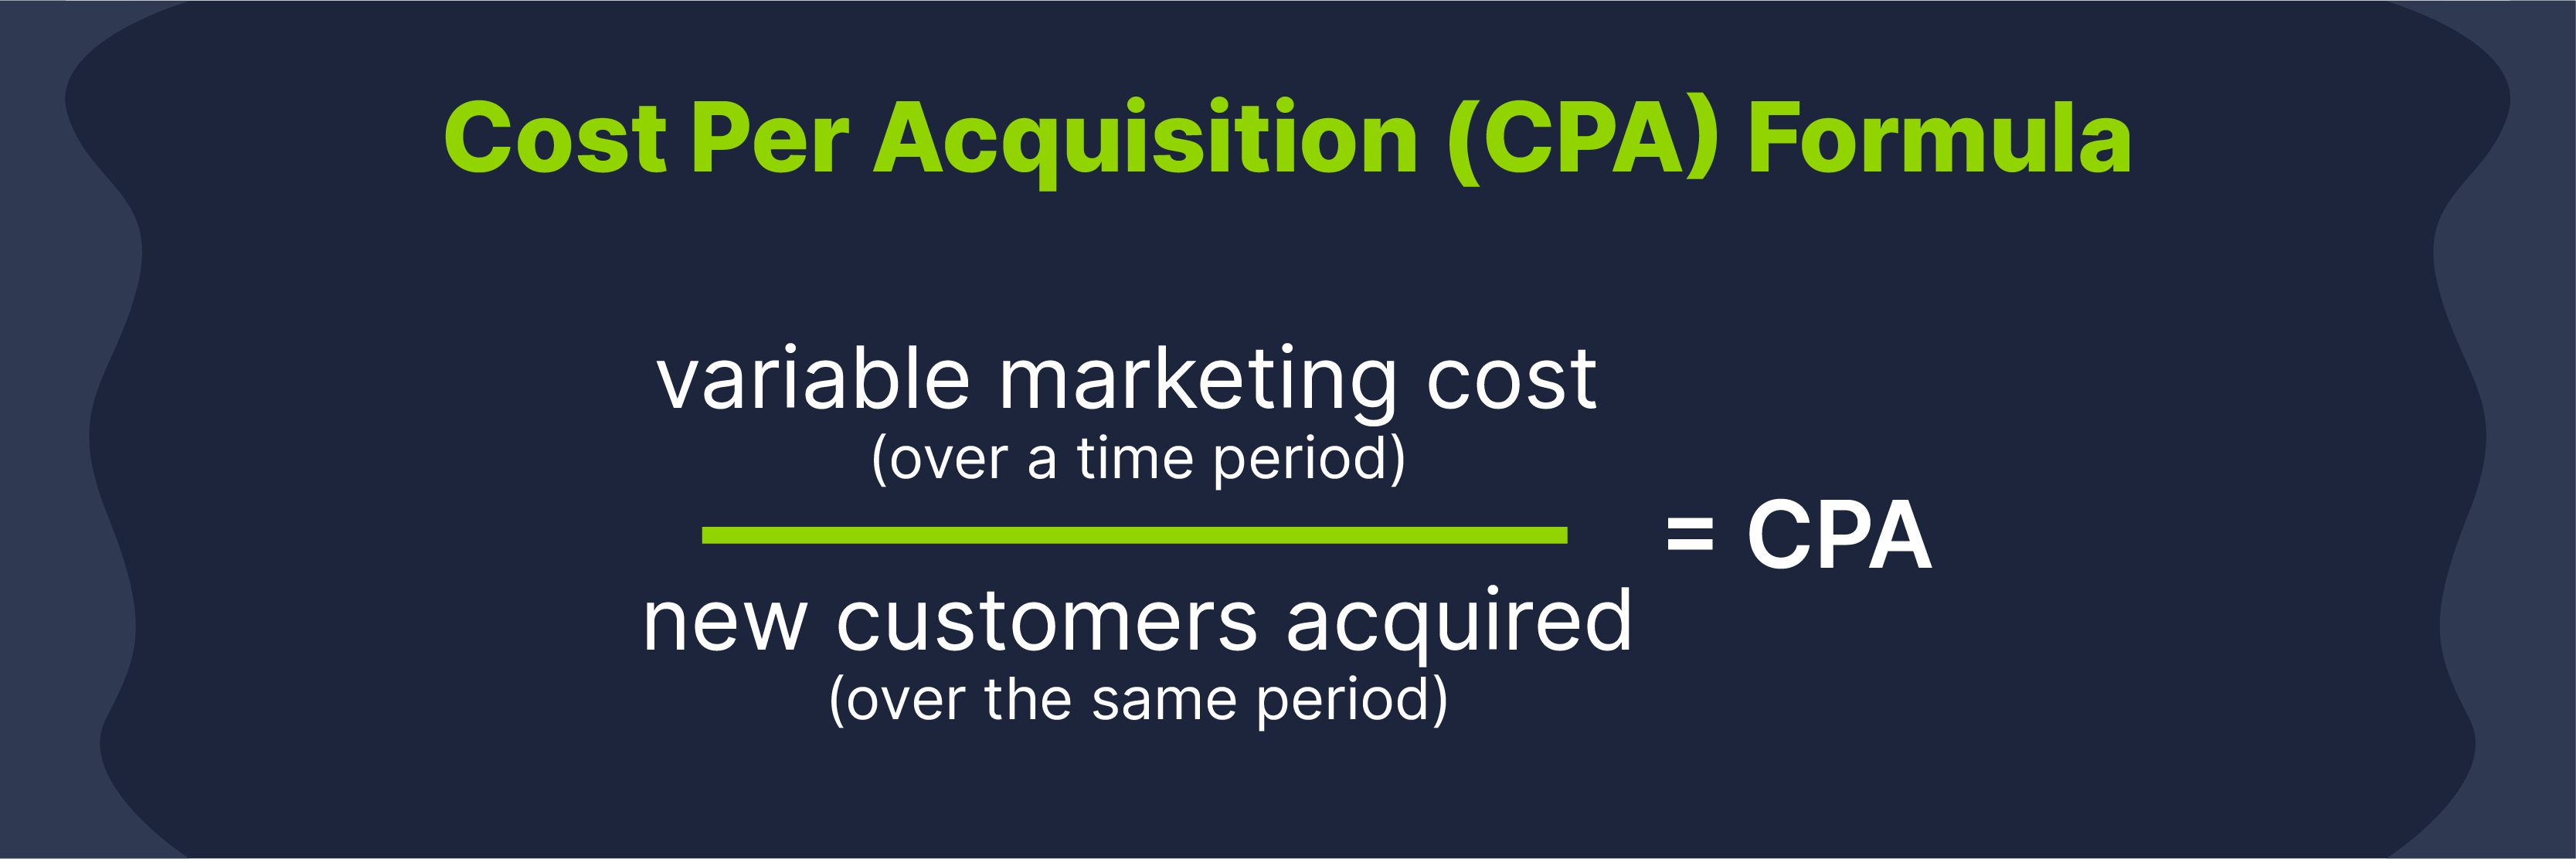 cost per acquisition formula is variable marketing cost divided by new customers acquired over the same time period